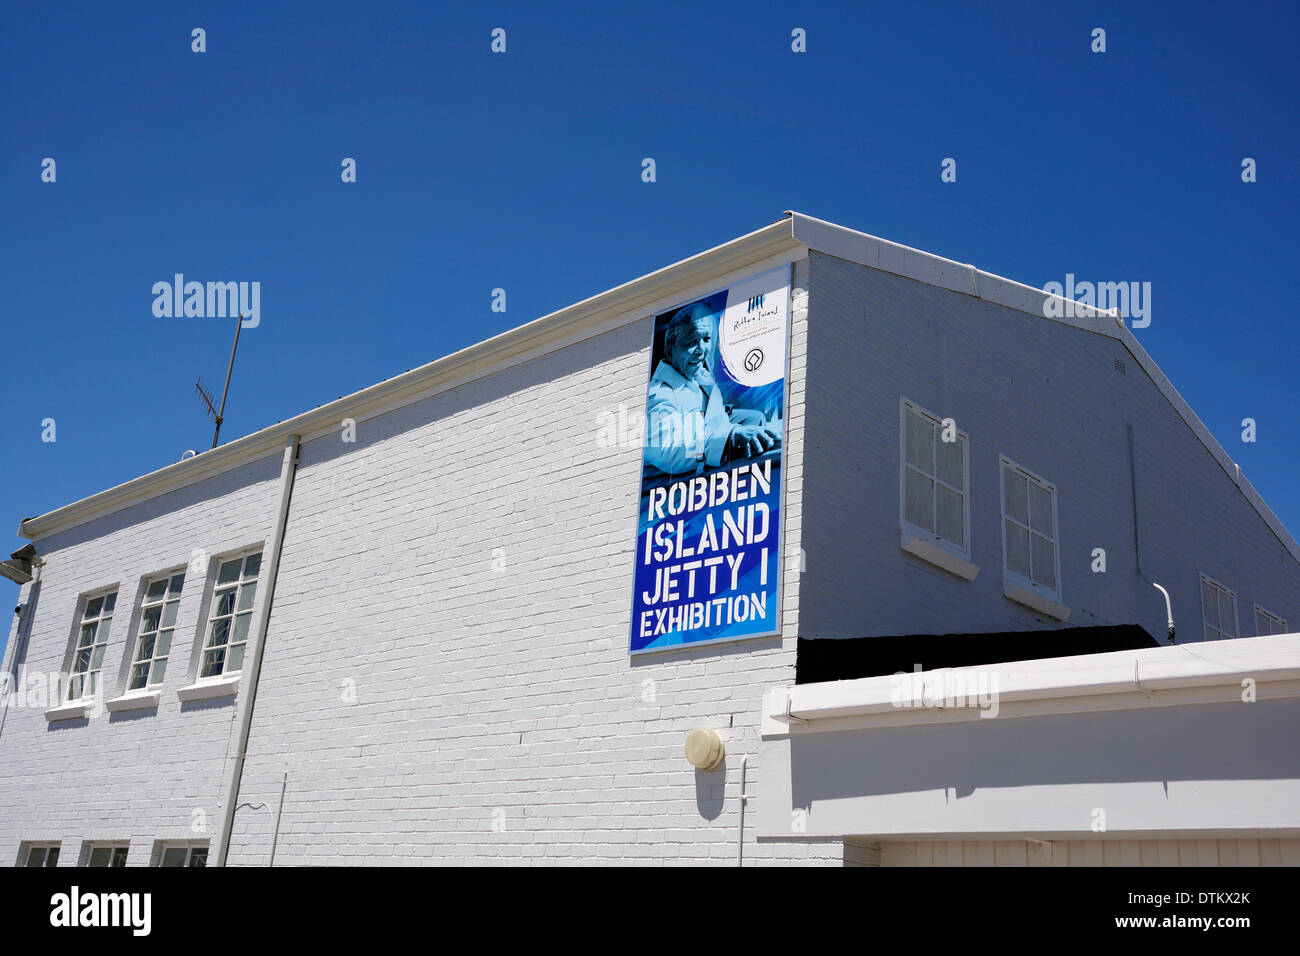 Robben Island Embarkation Building museum,, Jetty 1, Victoria & Alfred Waterfront, Cape Town. - Stock Image